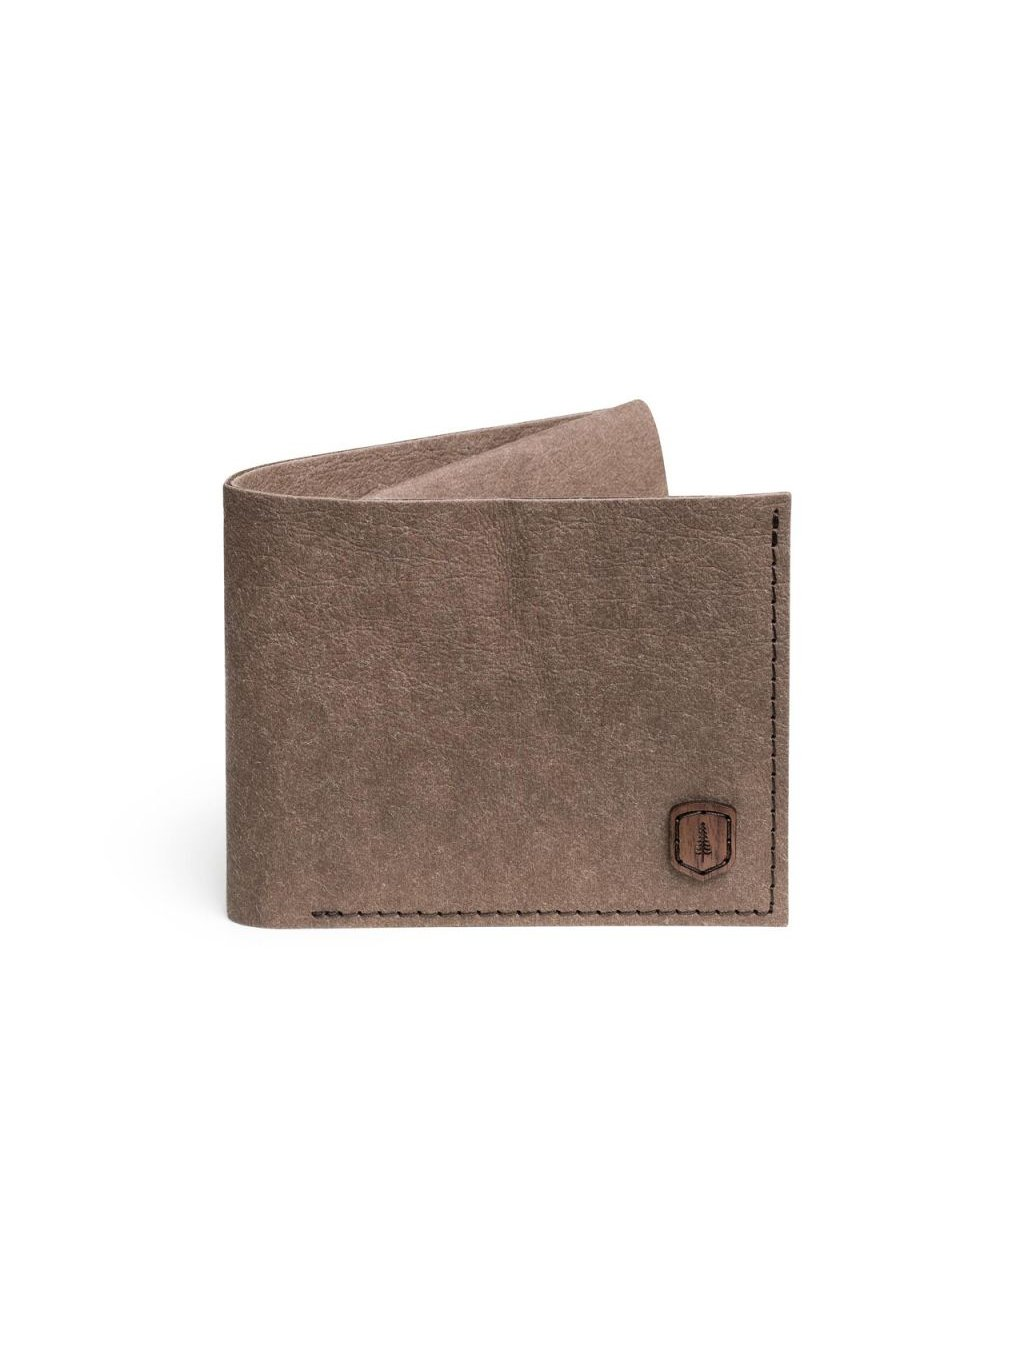 0 brunn washpaper wallet